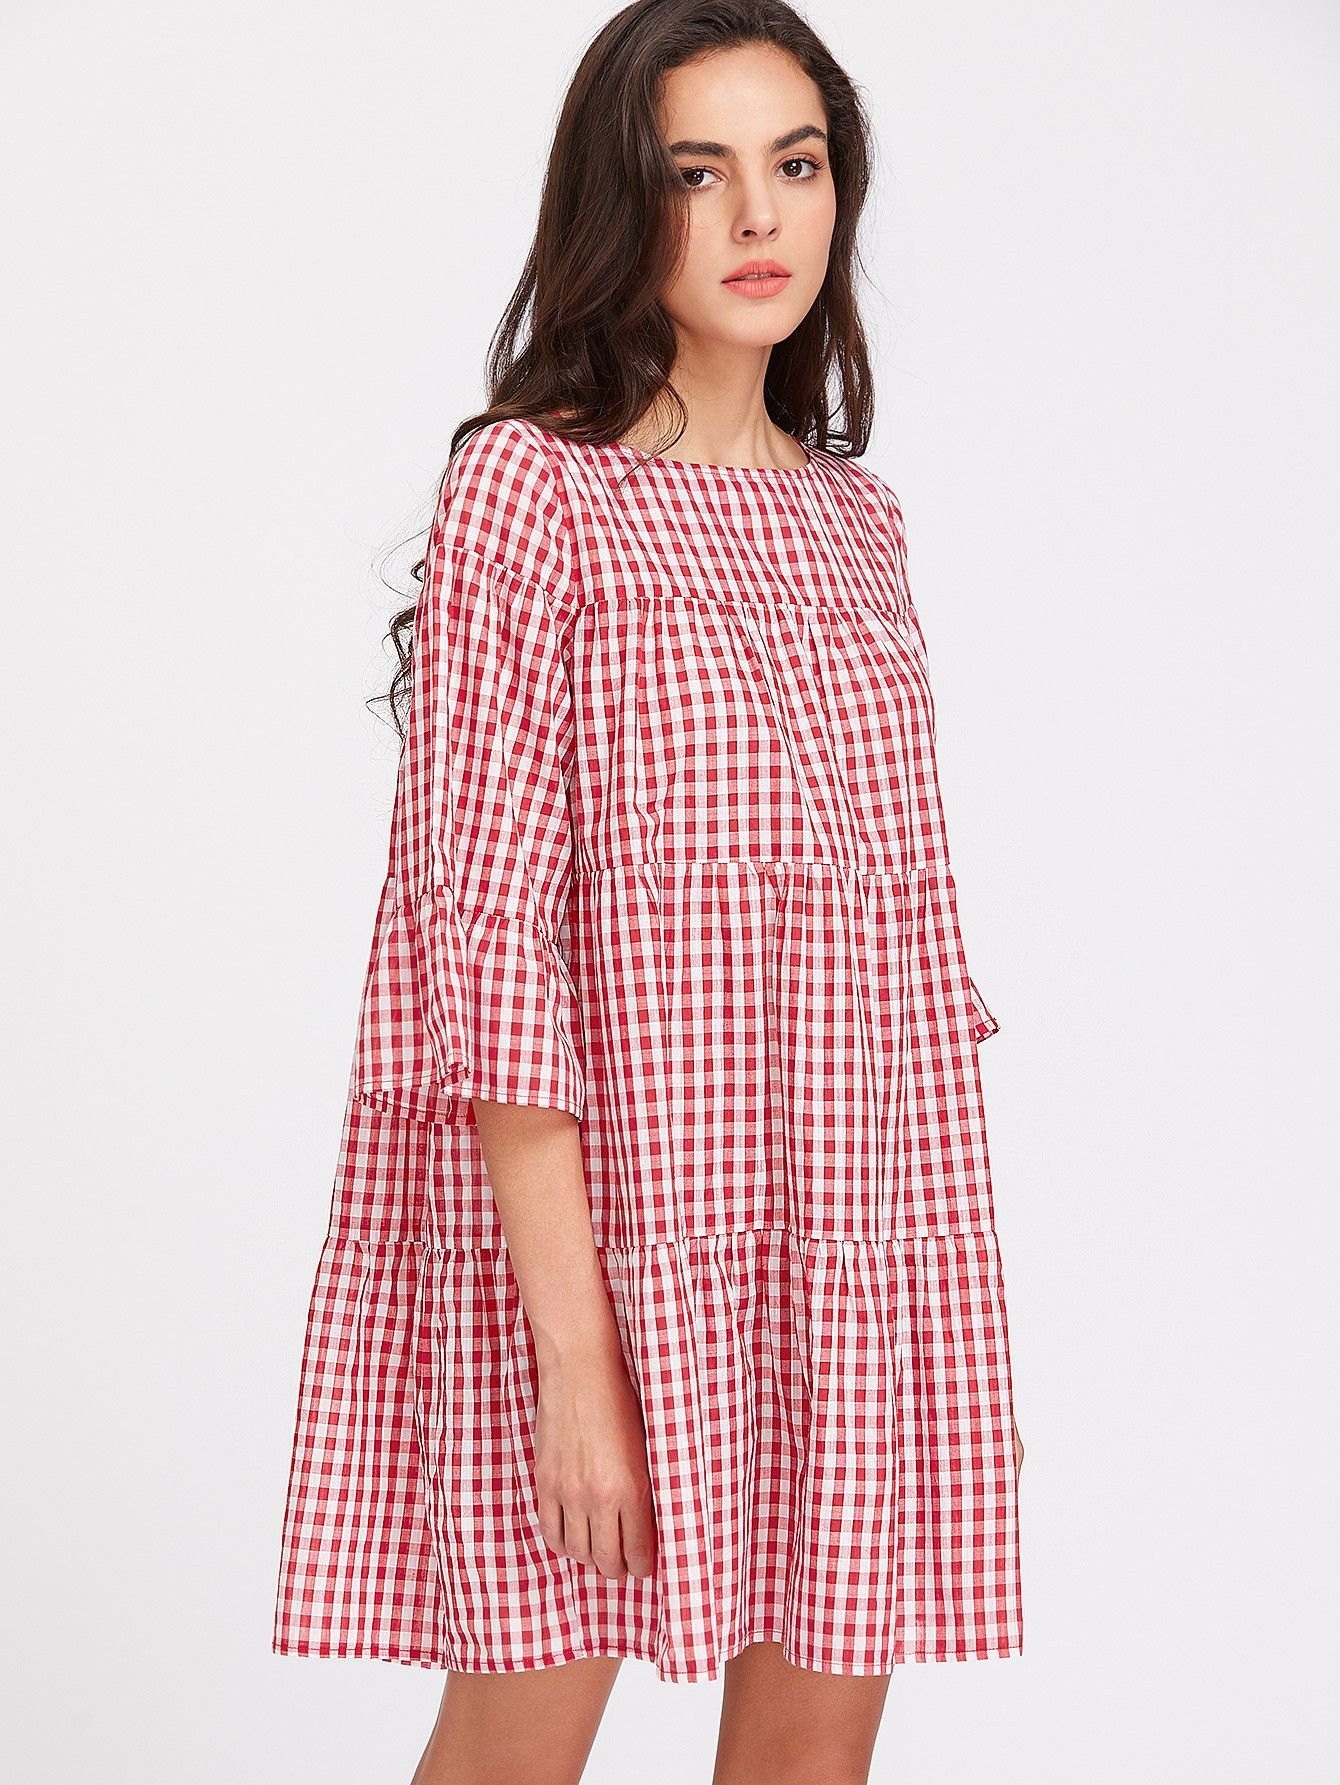 Red plaid sleeve gingham tent dress in fashun pinterest